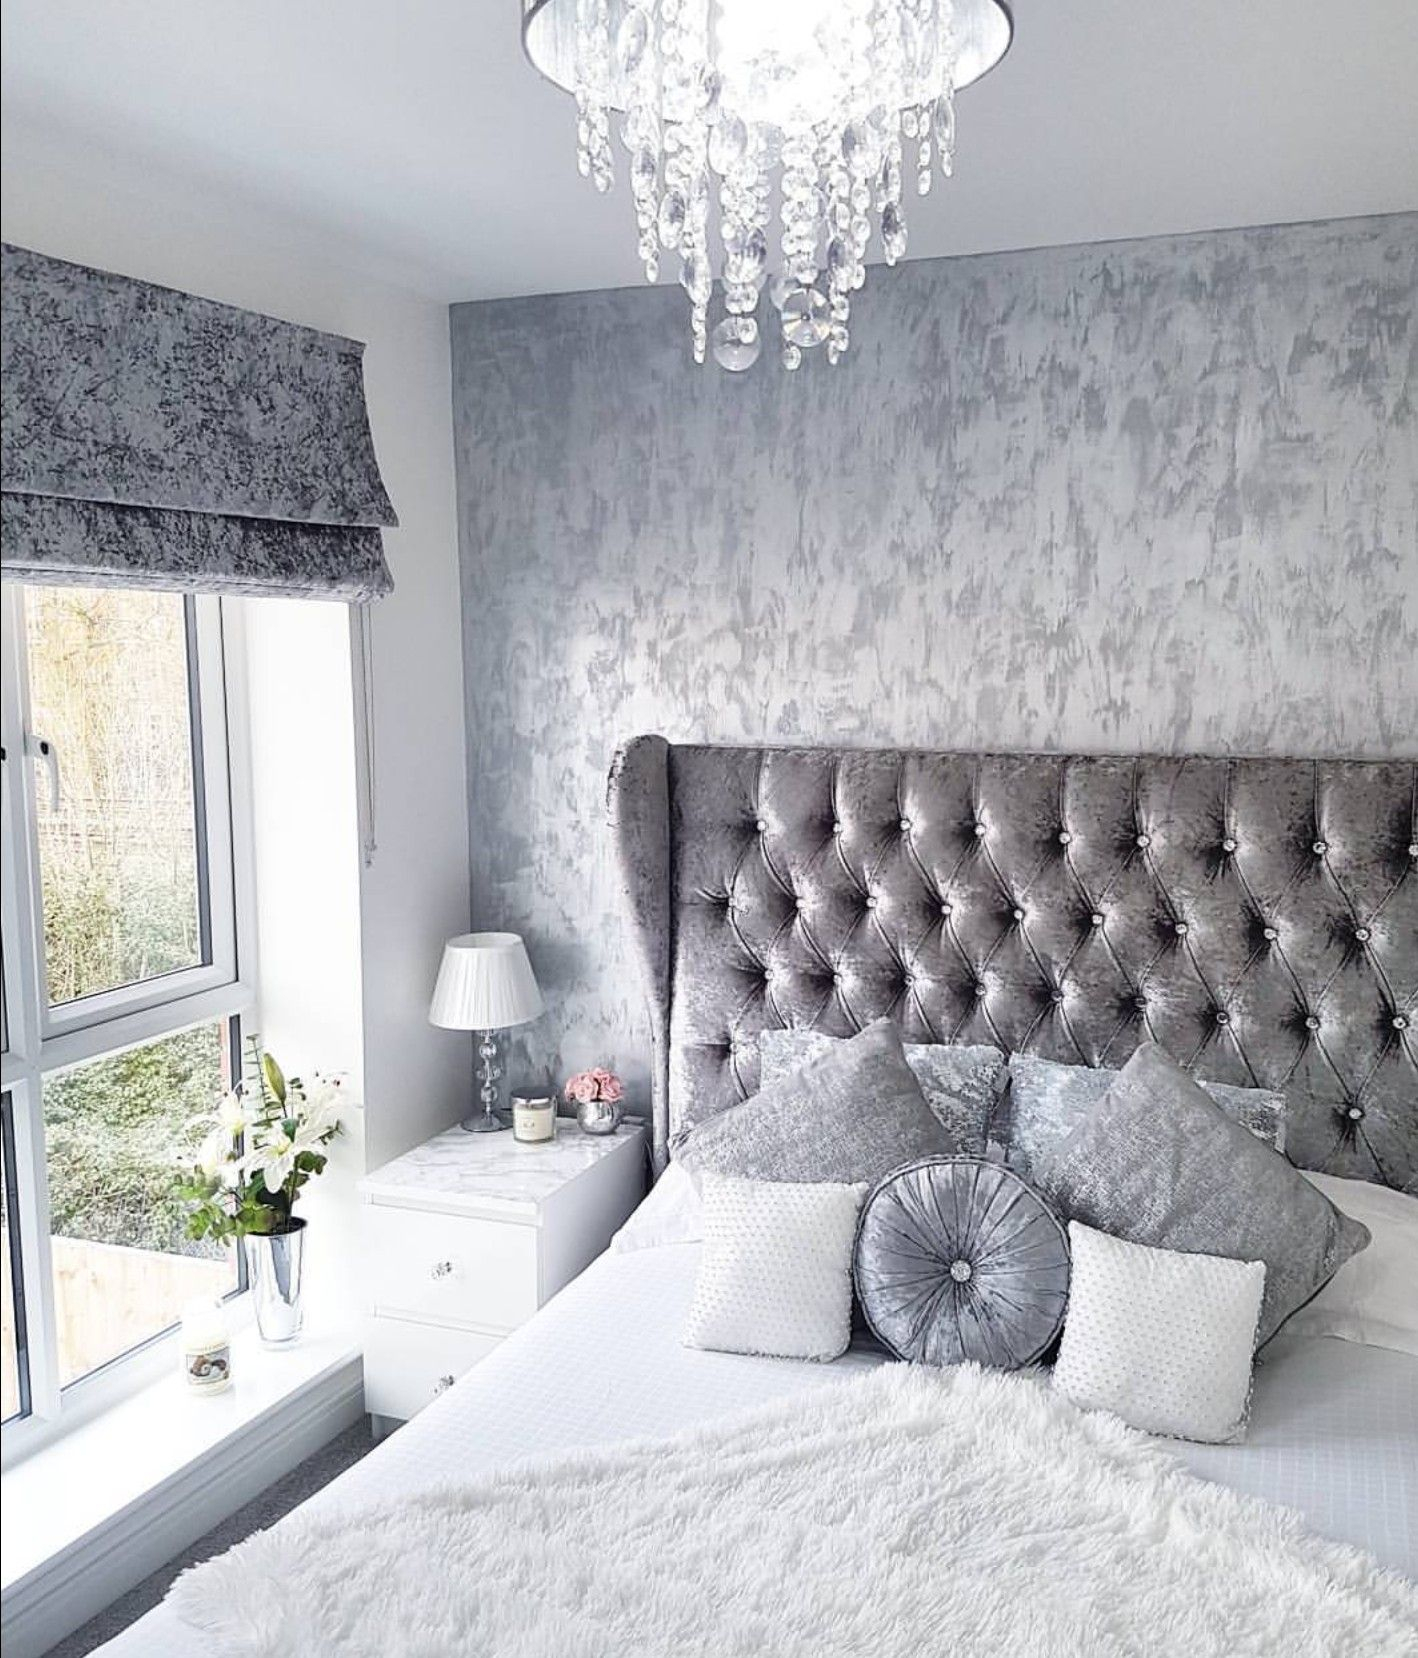 Grey Silver White Crushed Velvet Bedroom Modern Decor Inspo From intended for 15 Awesome Ideas How to Improve Modern Gray Bedroom Ideas